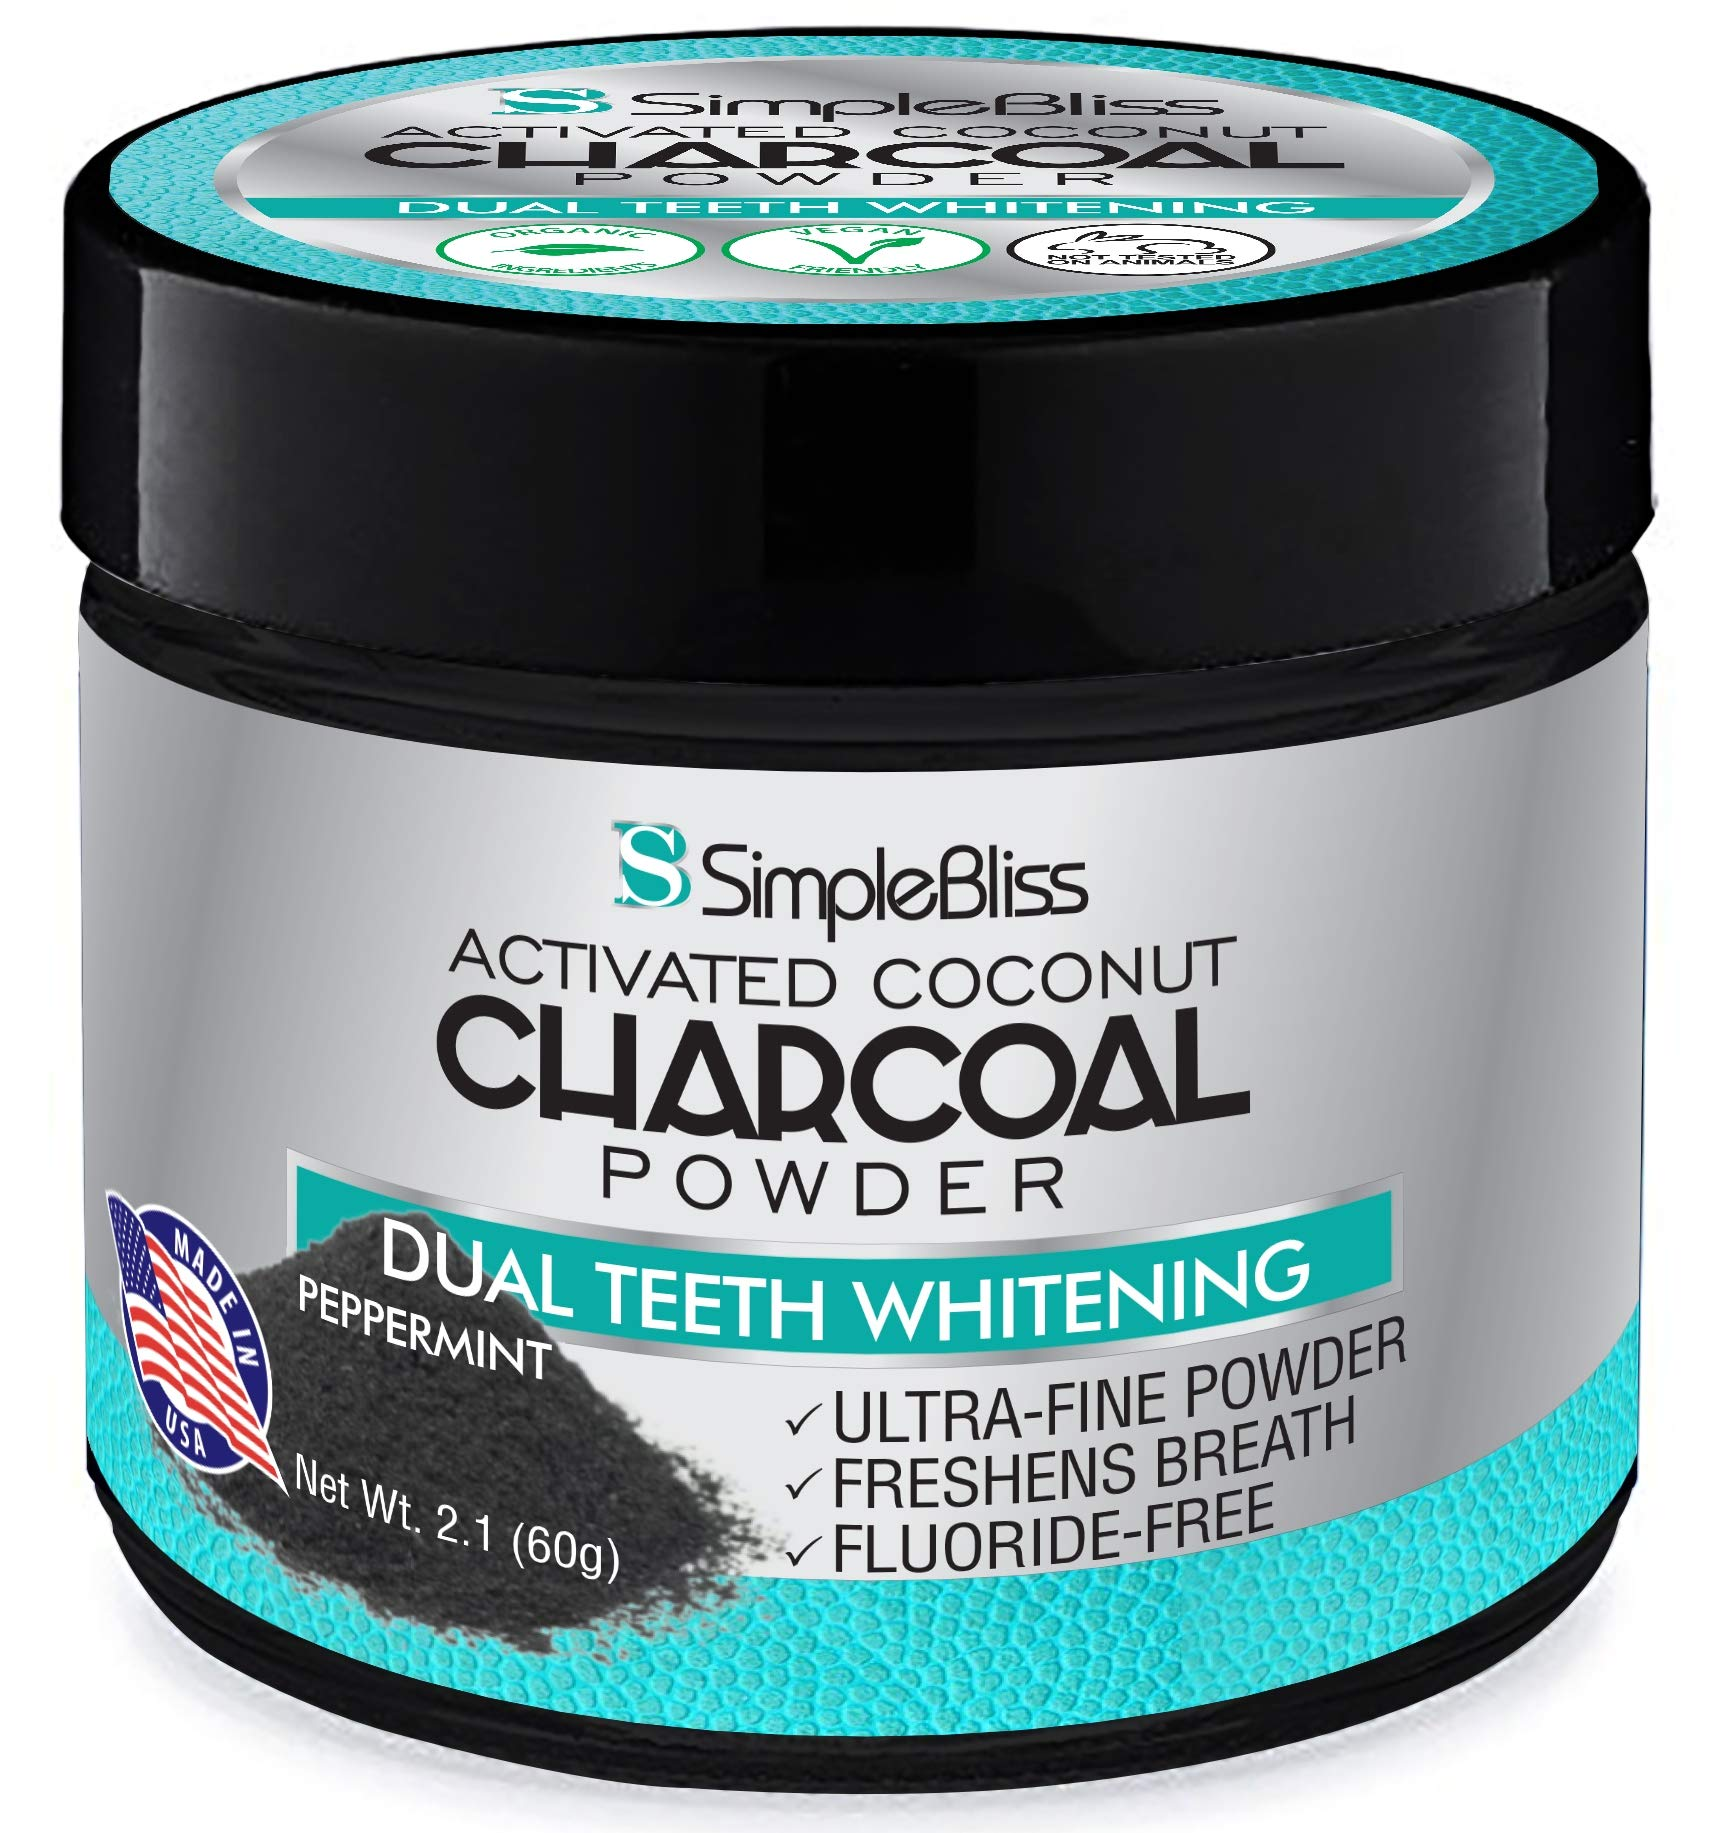 Teeth Whitening Activated Charcoal Powder Toothpaste 60g - All Natural, Non Abrasive, Safe & Effective Organic Coconut Tooth Whitener - Removes Stains, Fluoride Free, Made in USA - Peppermint